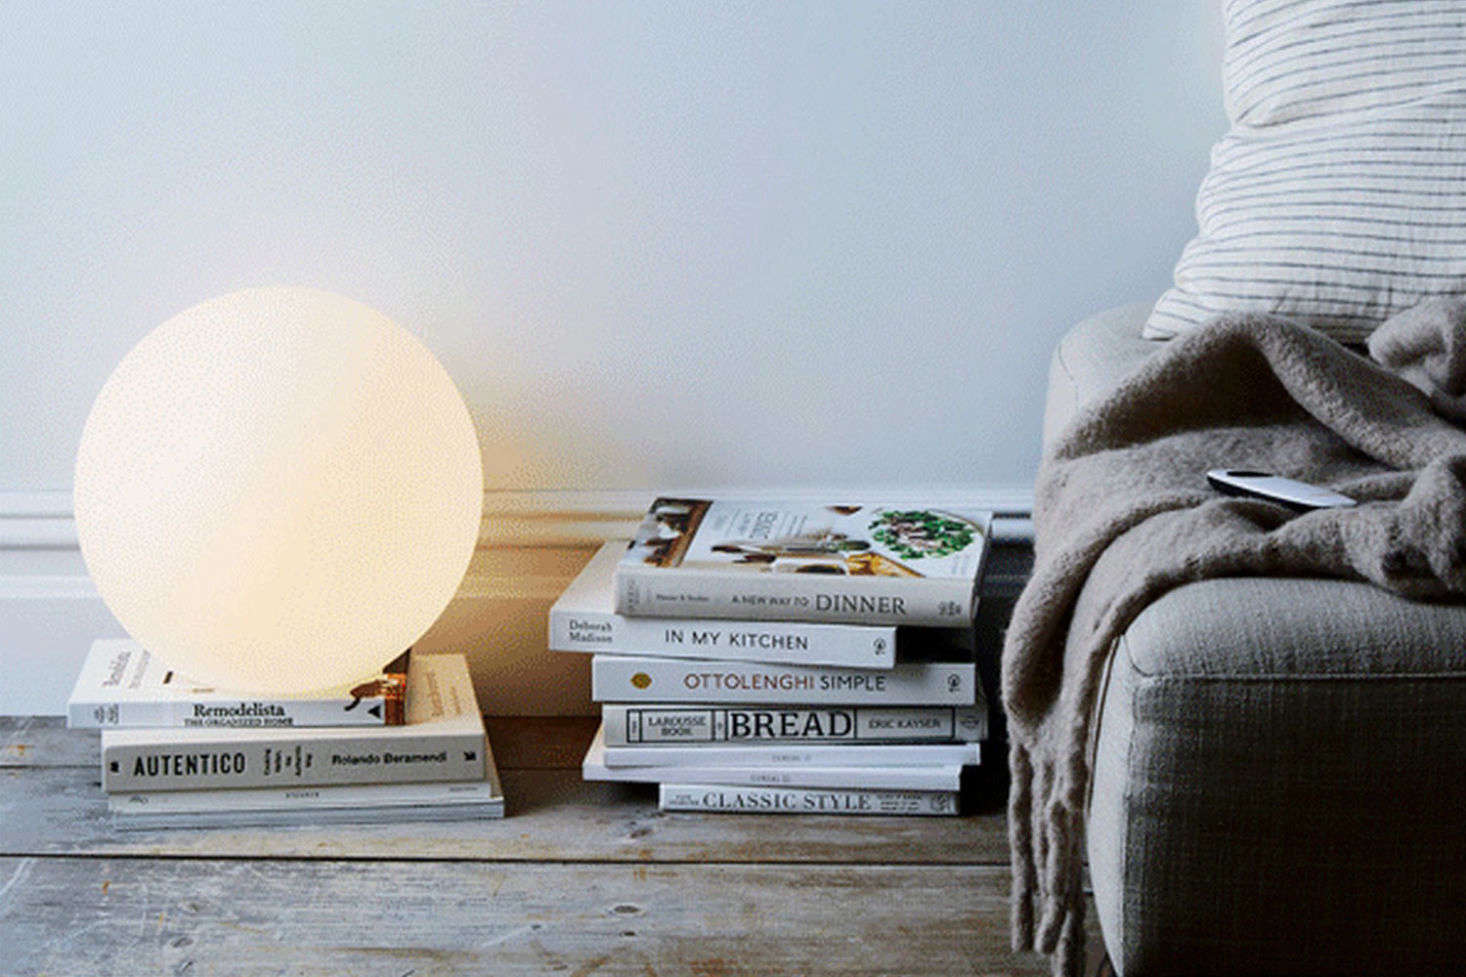 The Allsop Luna Lamp is an LED with a remote control (it actually changes color, but you can leave it on the natural setting as well) that can be used for indoors or out; $90 at Food5